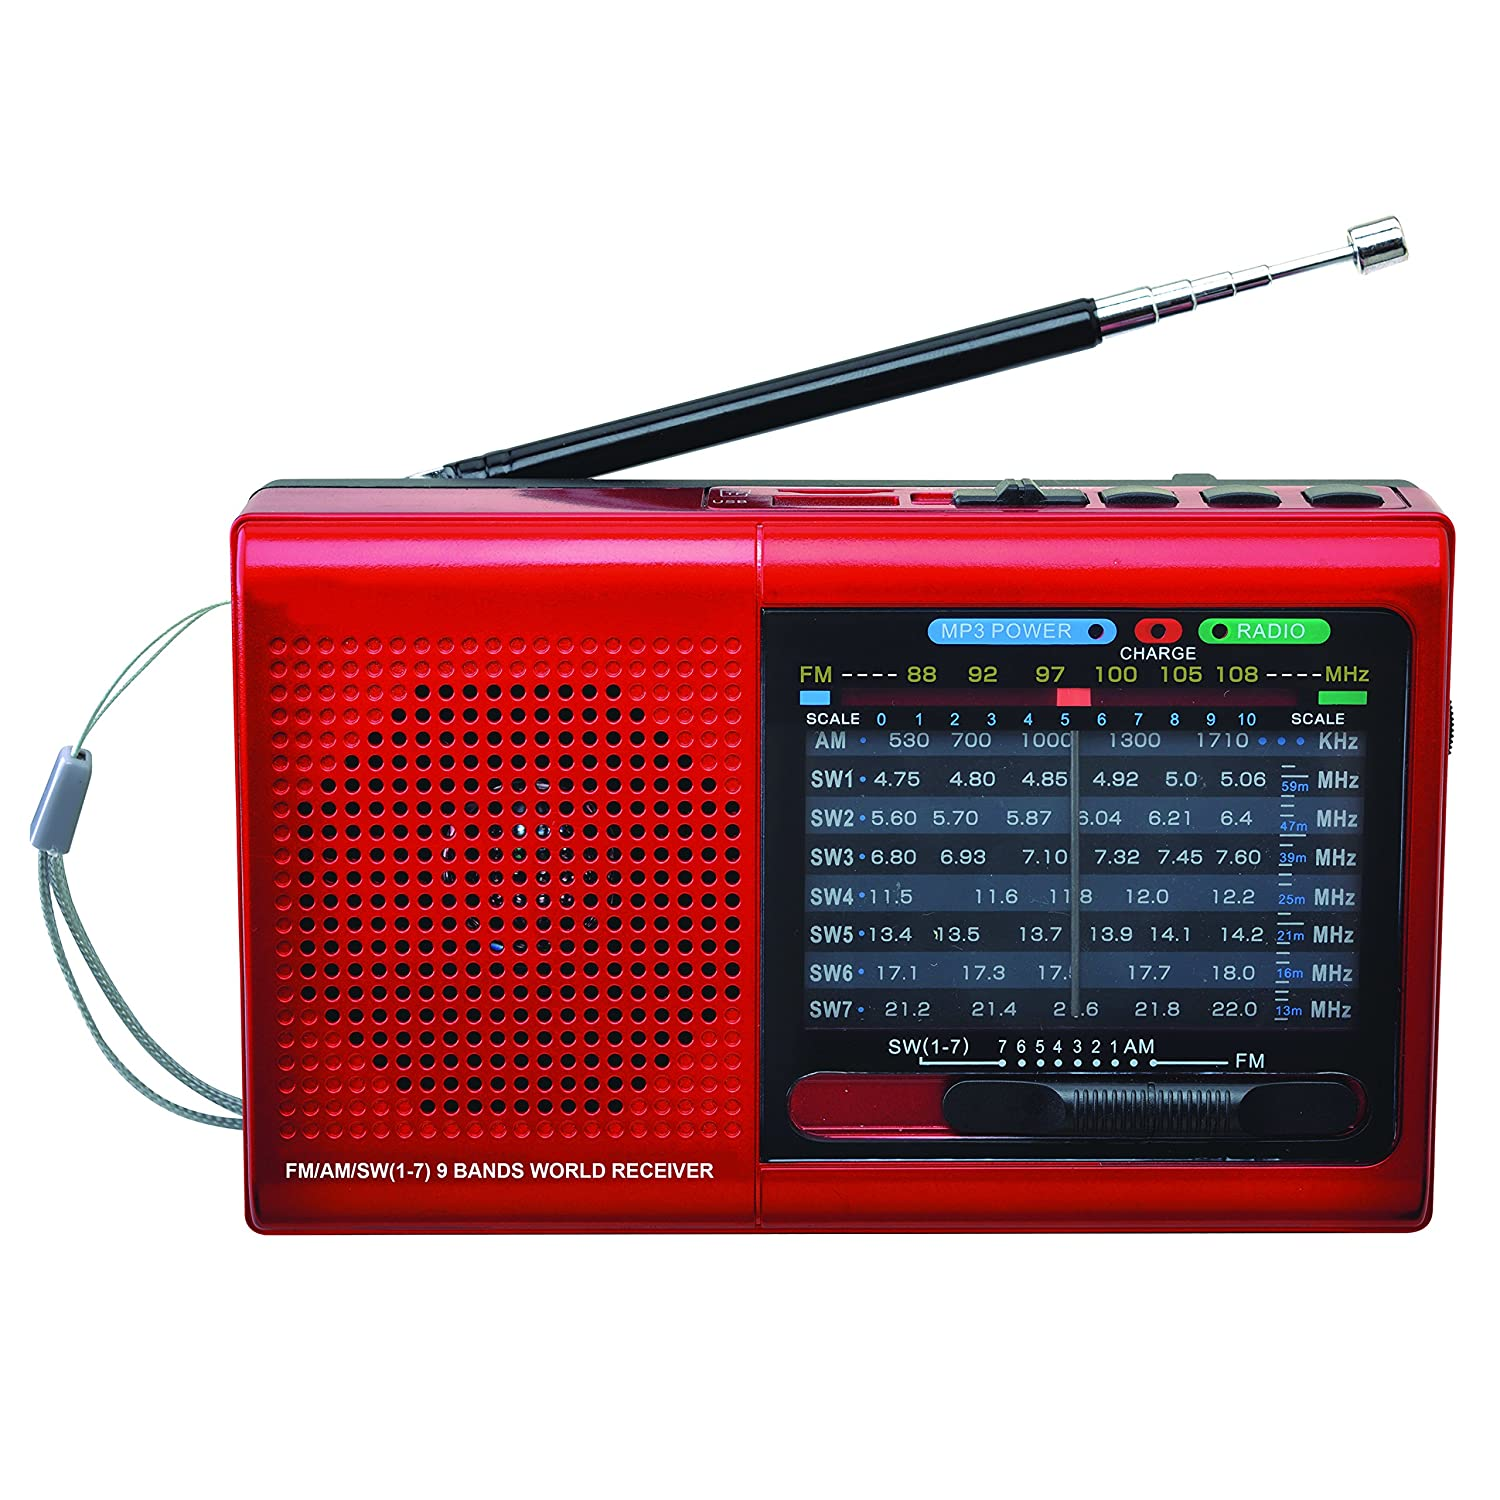 SuperSonic 9 Band Bluetooth Radio with AM/FM and SW1-7, Red (SC-1080BT-Red) SUPERSONIC(R) SC-1080BT RED